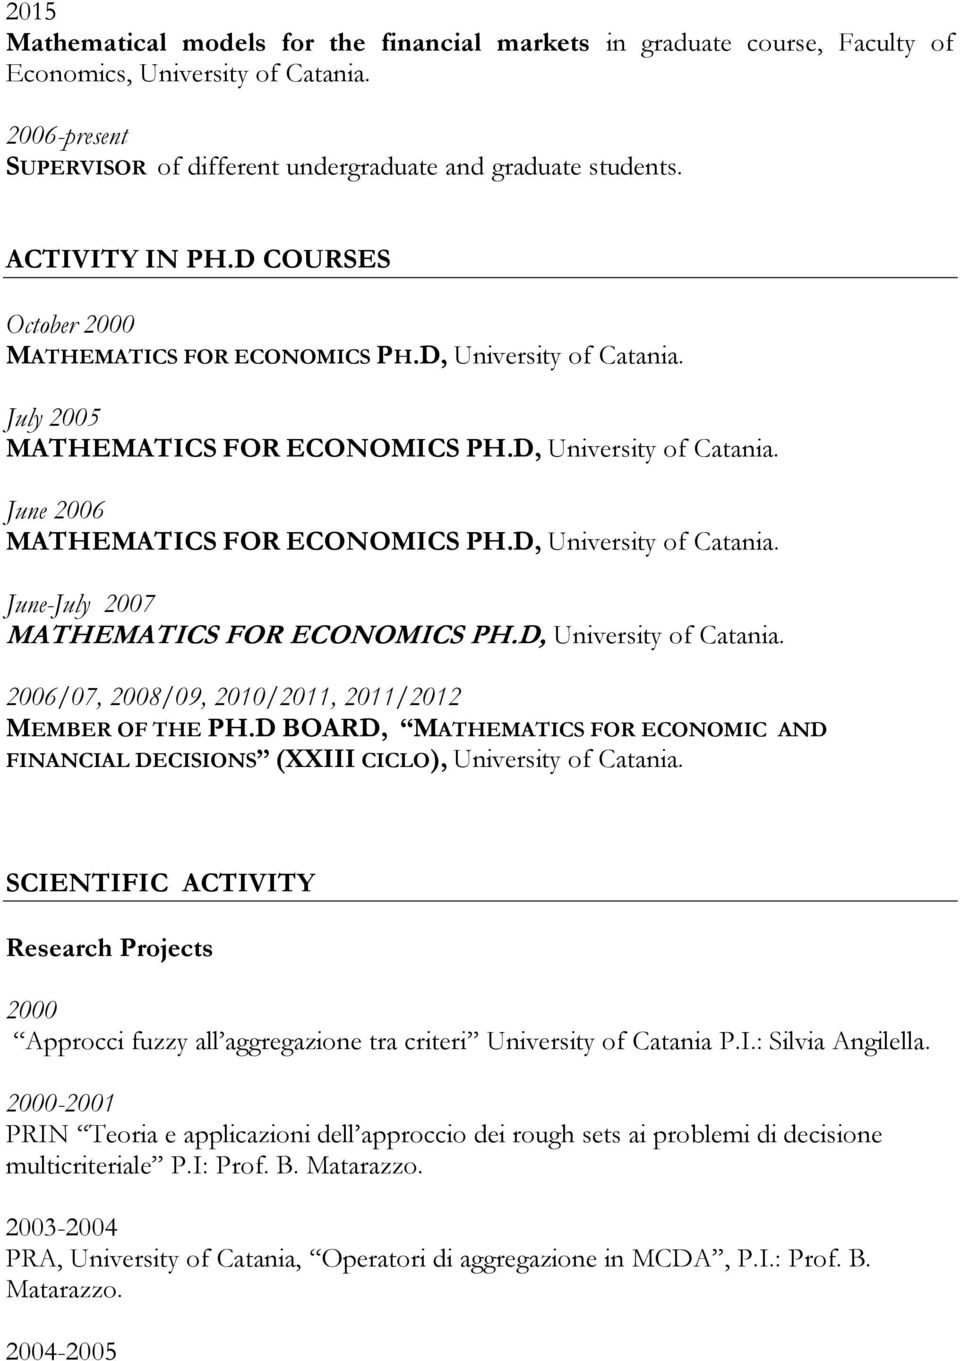 D, University of Catania. June-July 2007 MATHEMATICS FOR ECONOMICS PH.D, University of Catania. 2006/07, 2008/09, 2010/2011, 2011/2012 MEMBER OF THE PH.